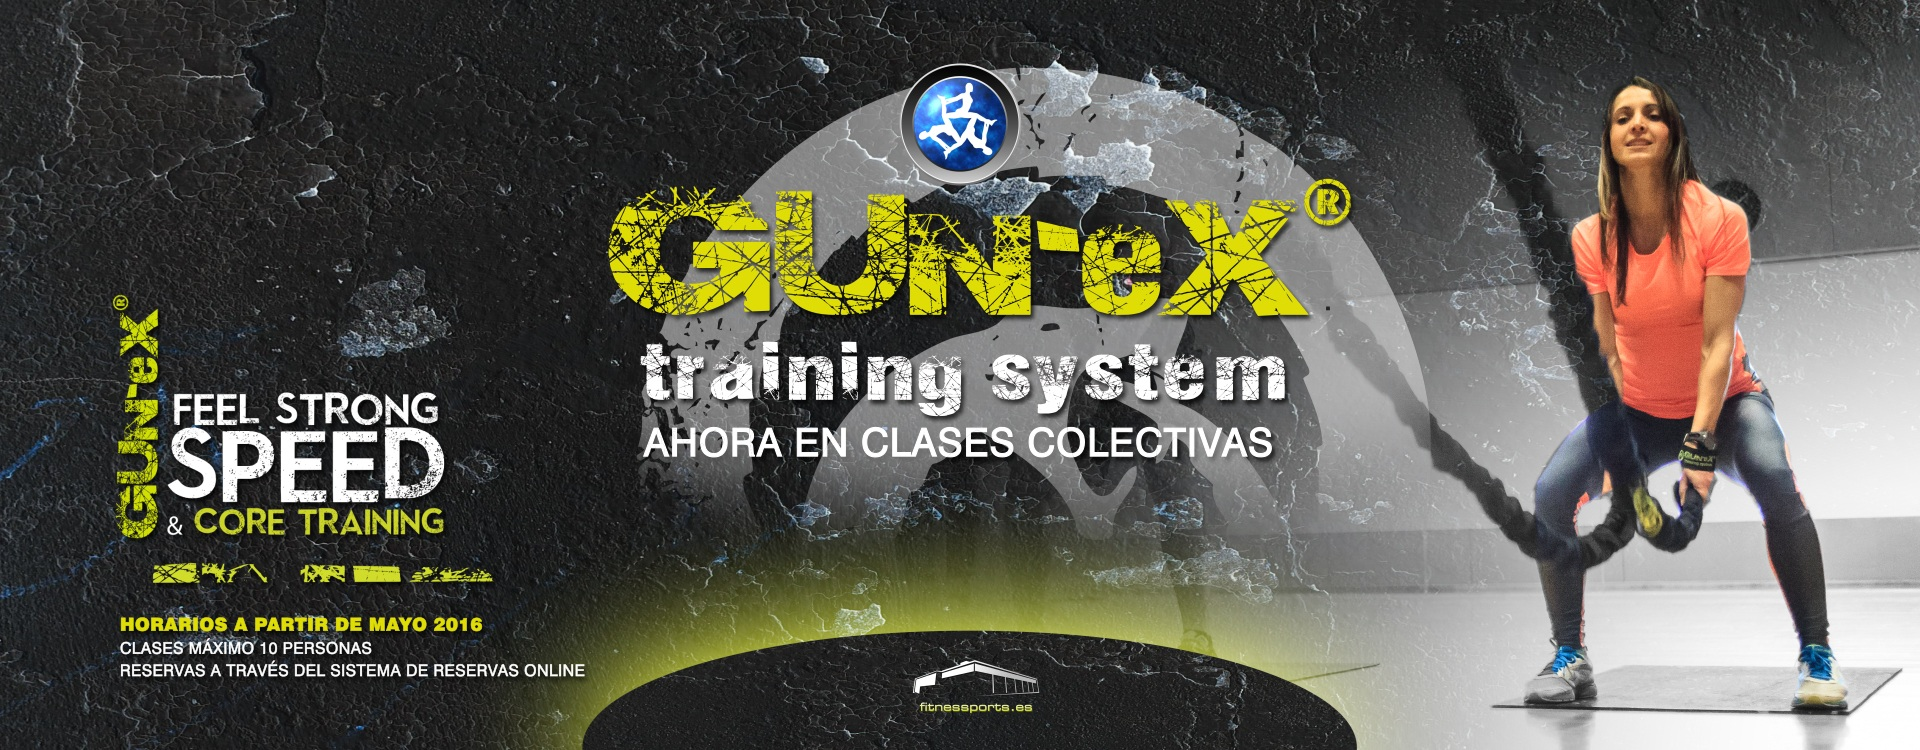 Gunex-Training-System-Fitness-Sports-Clases-Colectivas-by-PerfectPixel-Publicidad-Wide